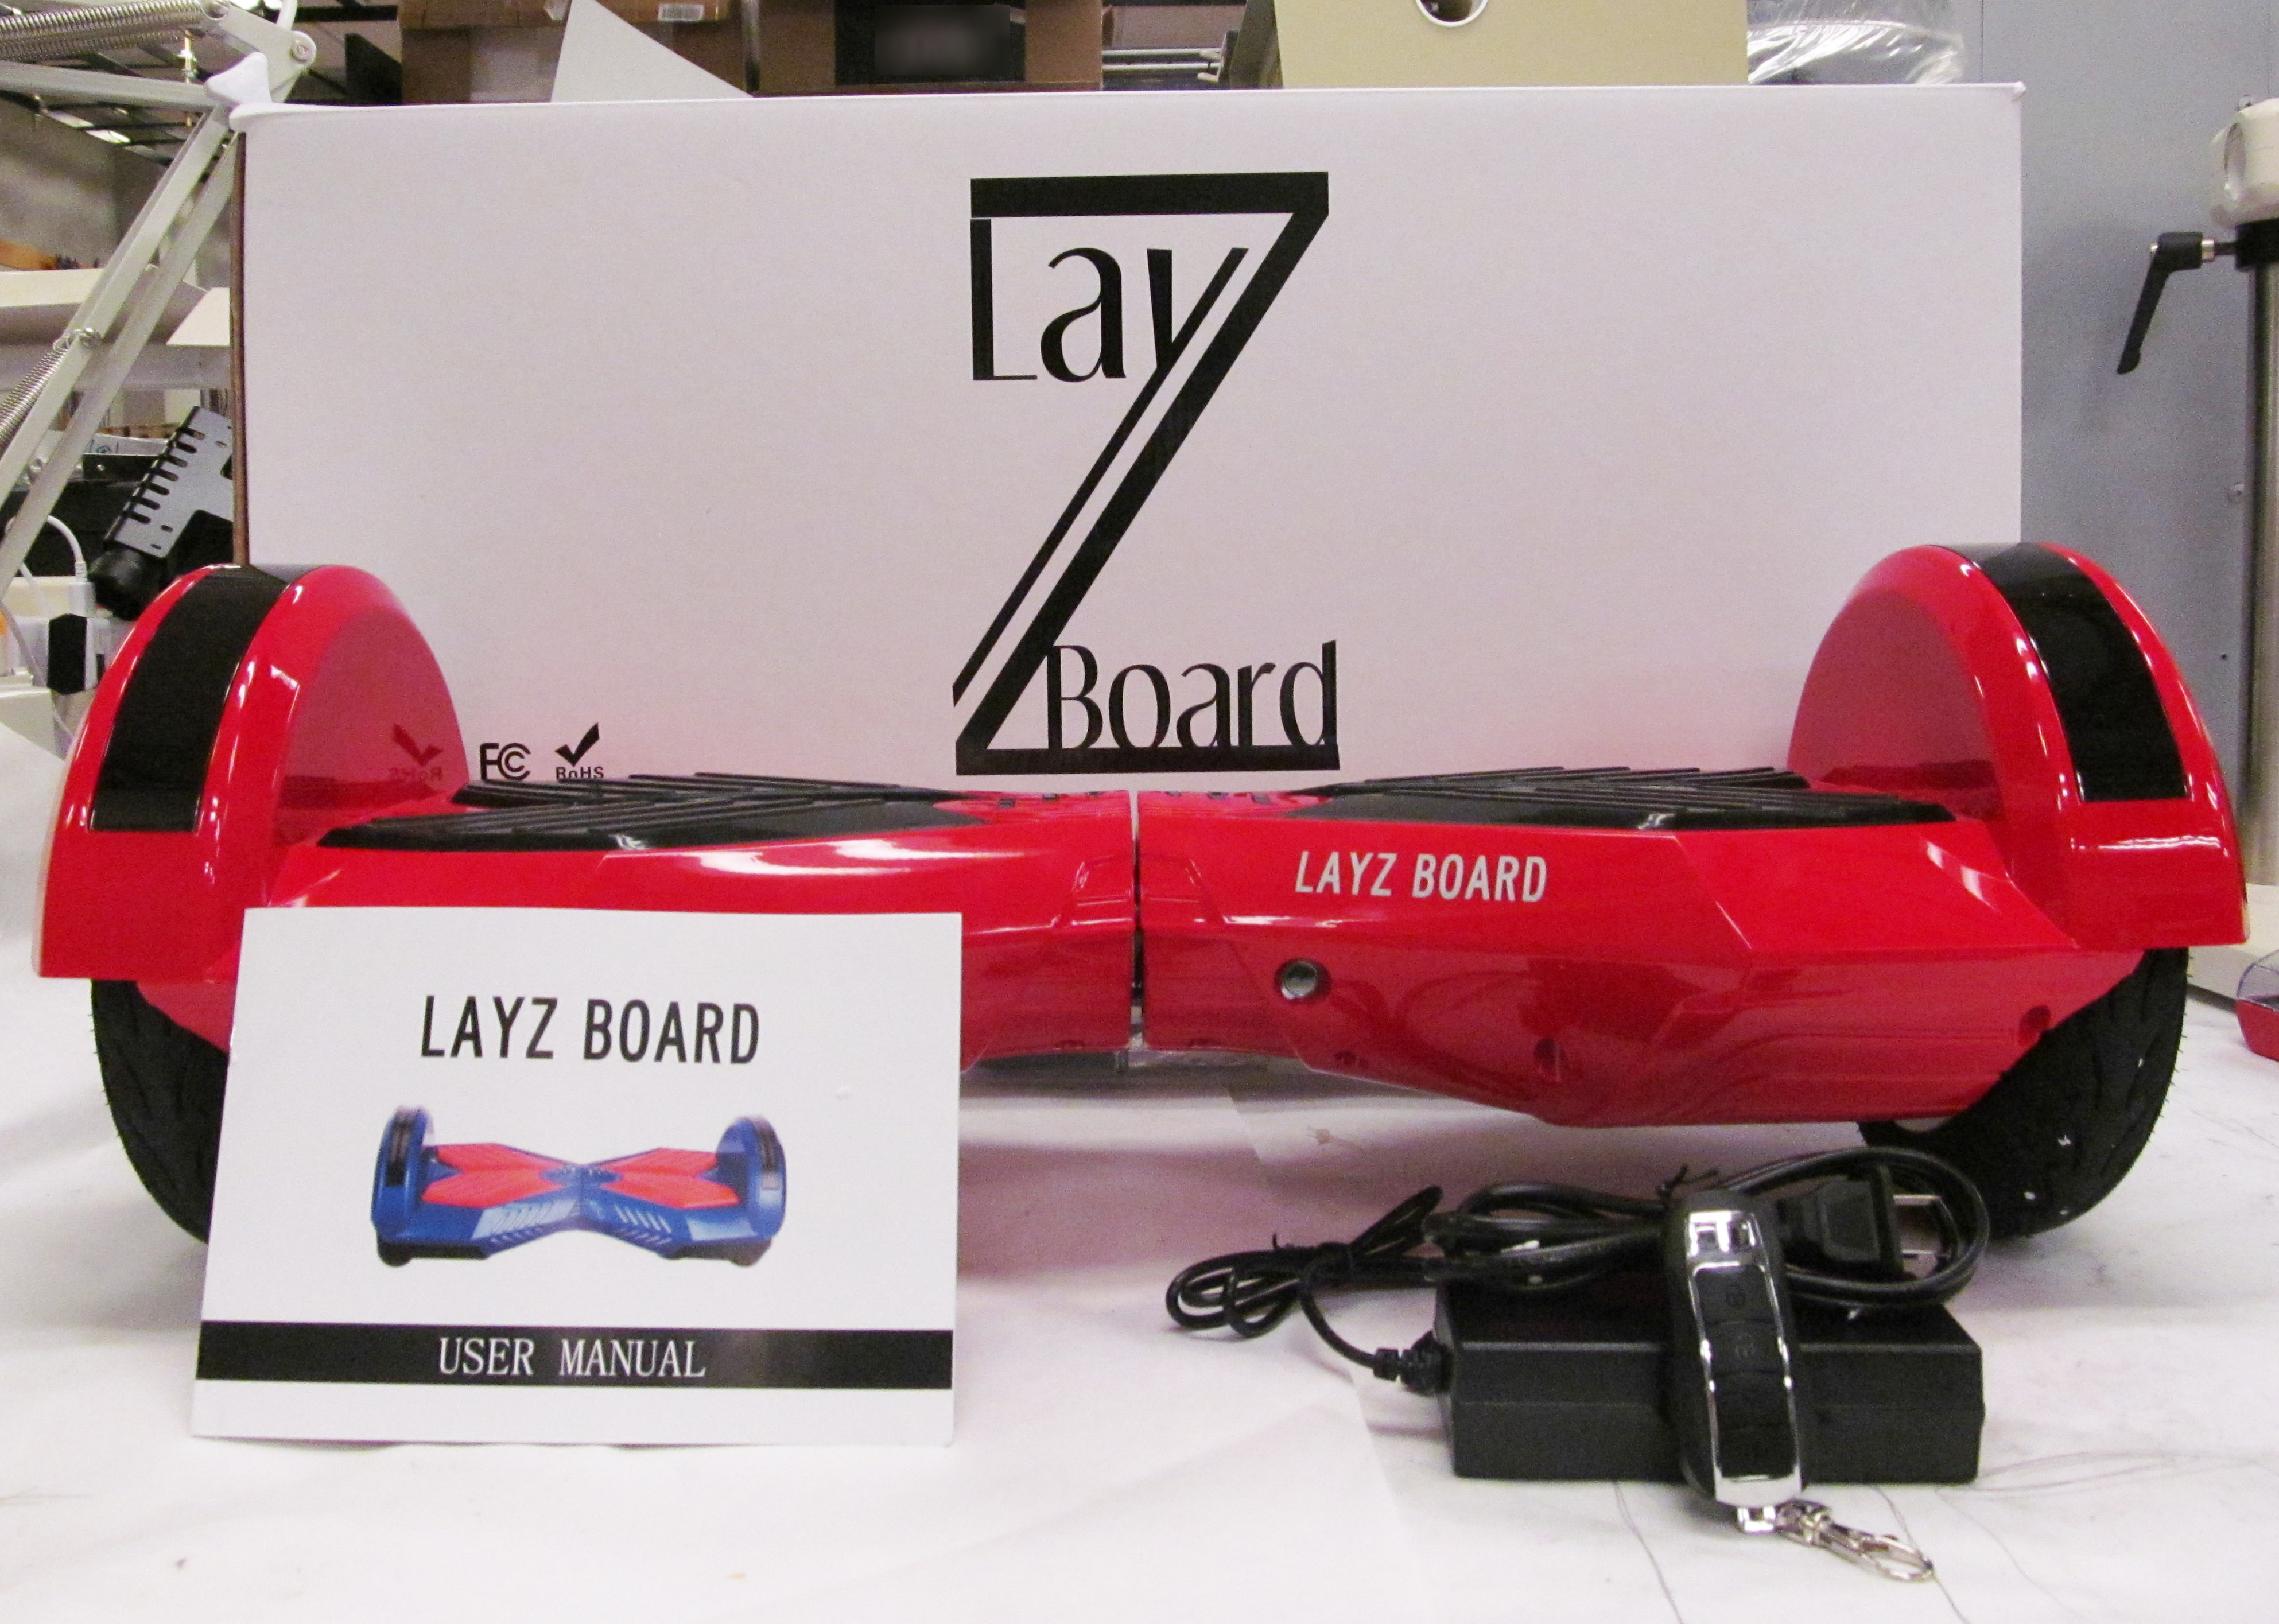 After Deadly Fire, Government Warns Against Using LayZ Board Hoverboards